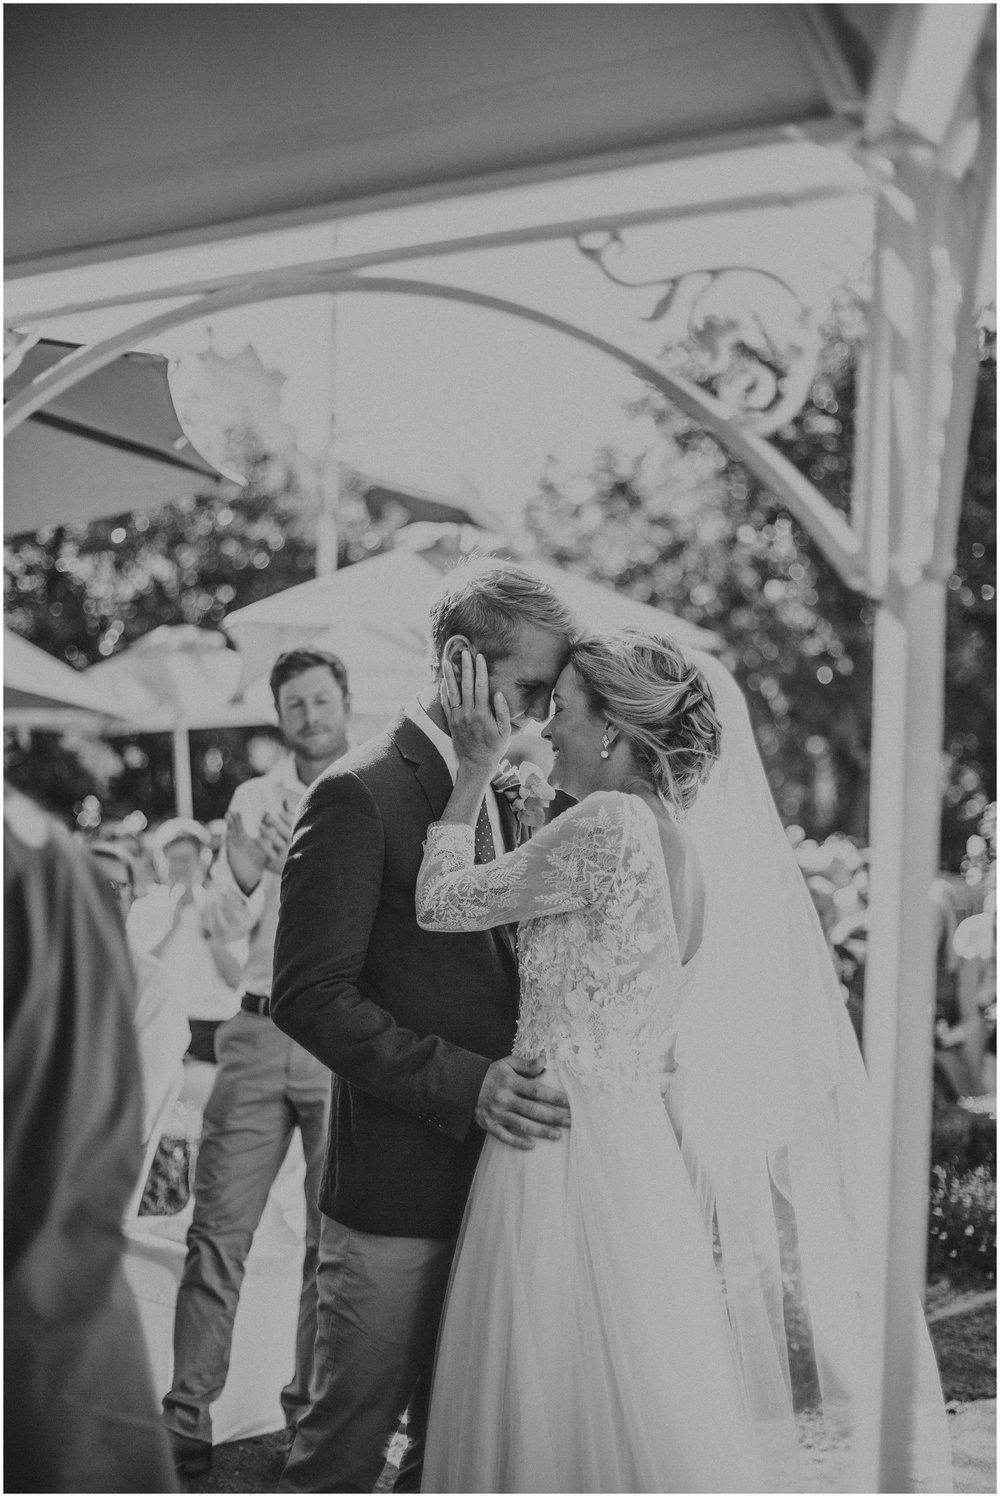 Top Wedding Photographer Cape Town South Africa Artistic Creative Documentary Wedding Photography Rue Kruger_0707.jpg